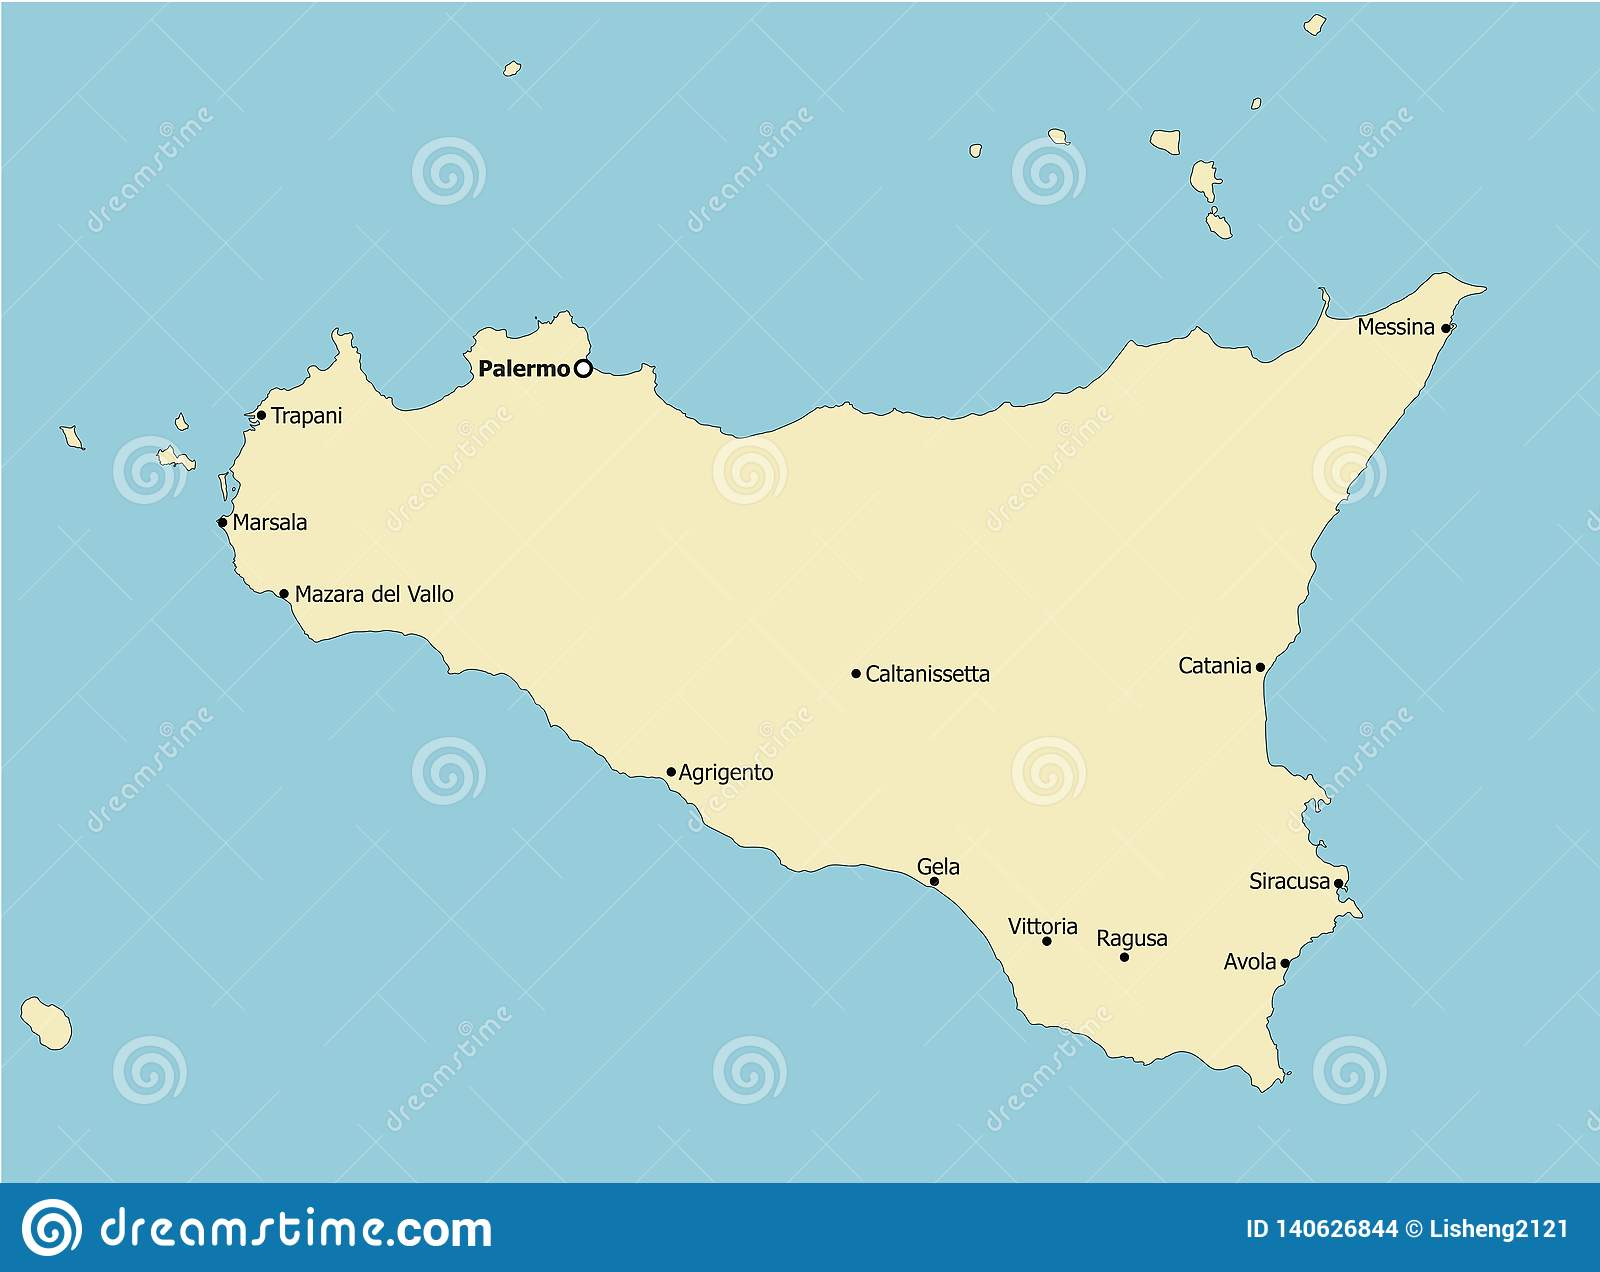 Sicily On Map Of Italy.Highly Detailed Sicily Map Italy Main Cities Stock Vector